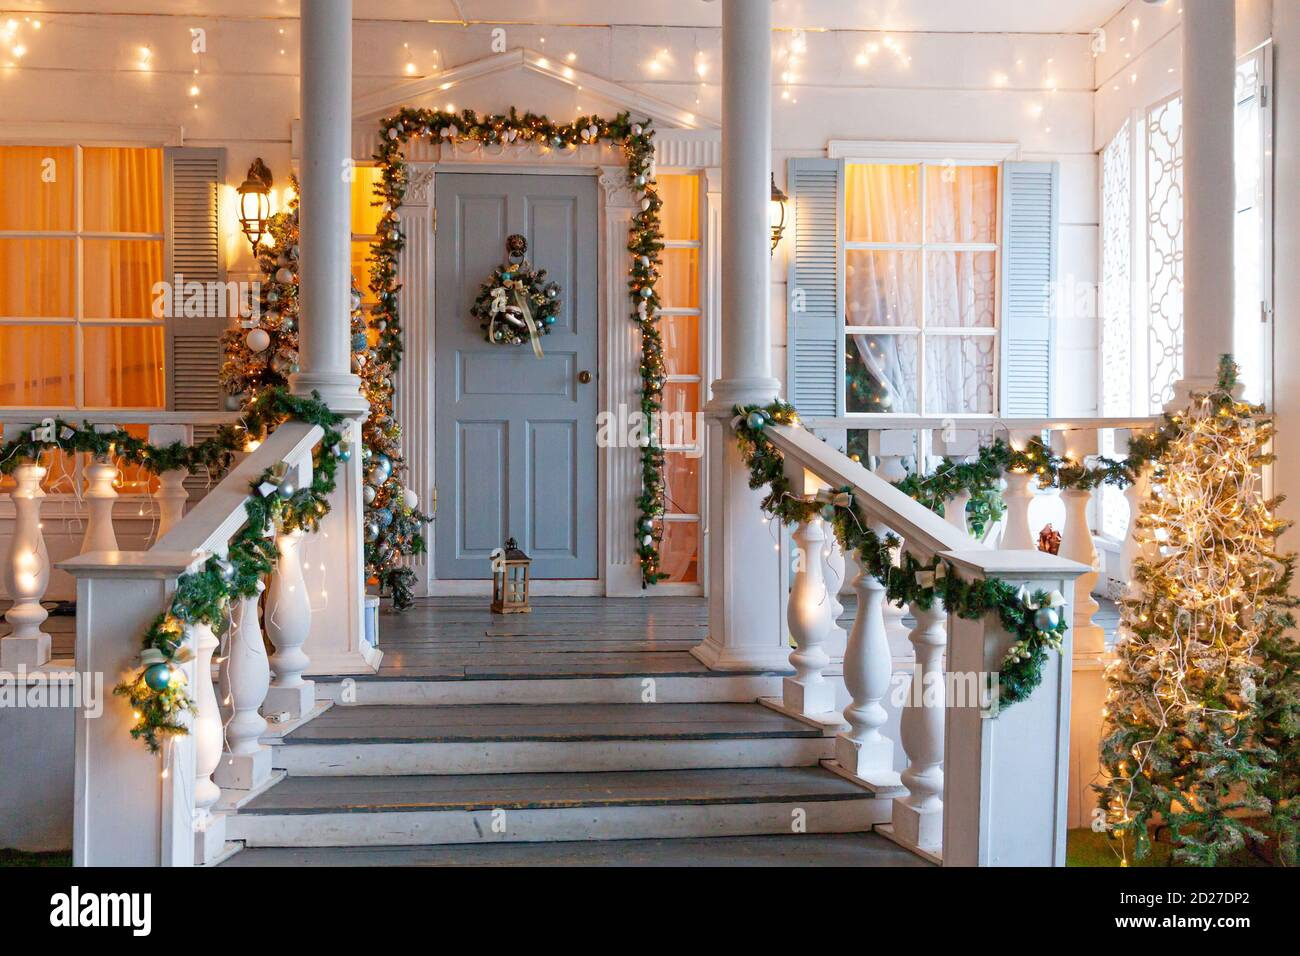 Christmas Porch Decoration Idea House Entrance Decorated For Holidays Golden And Green Wreath Garland Of Fir Tree Branches And Lights On Railing Christmas Eve At Home Stock Photo Alamy